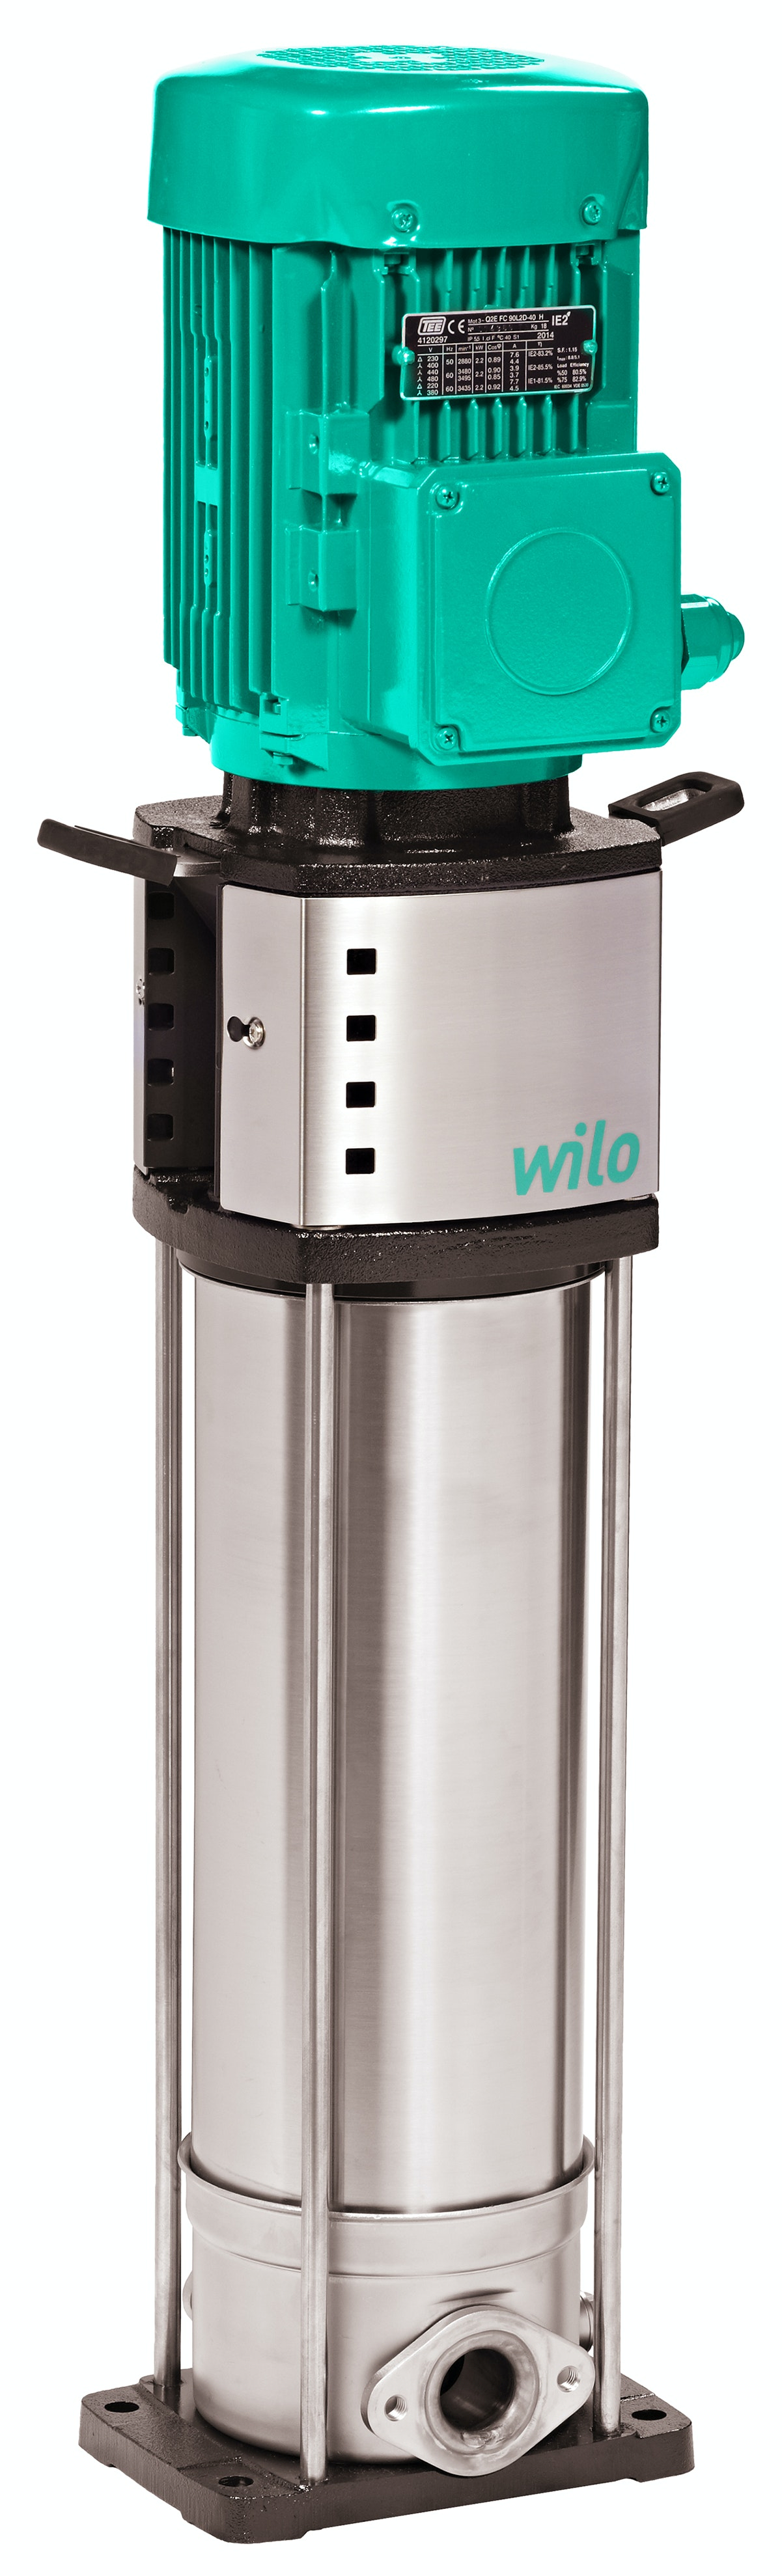 wilo Tryckstegringspump wilo helix v 1606 pn16